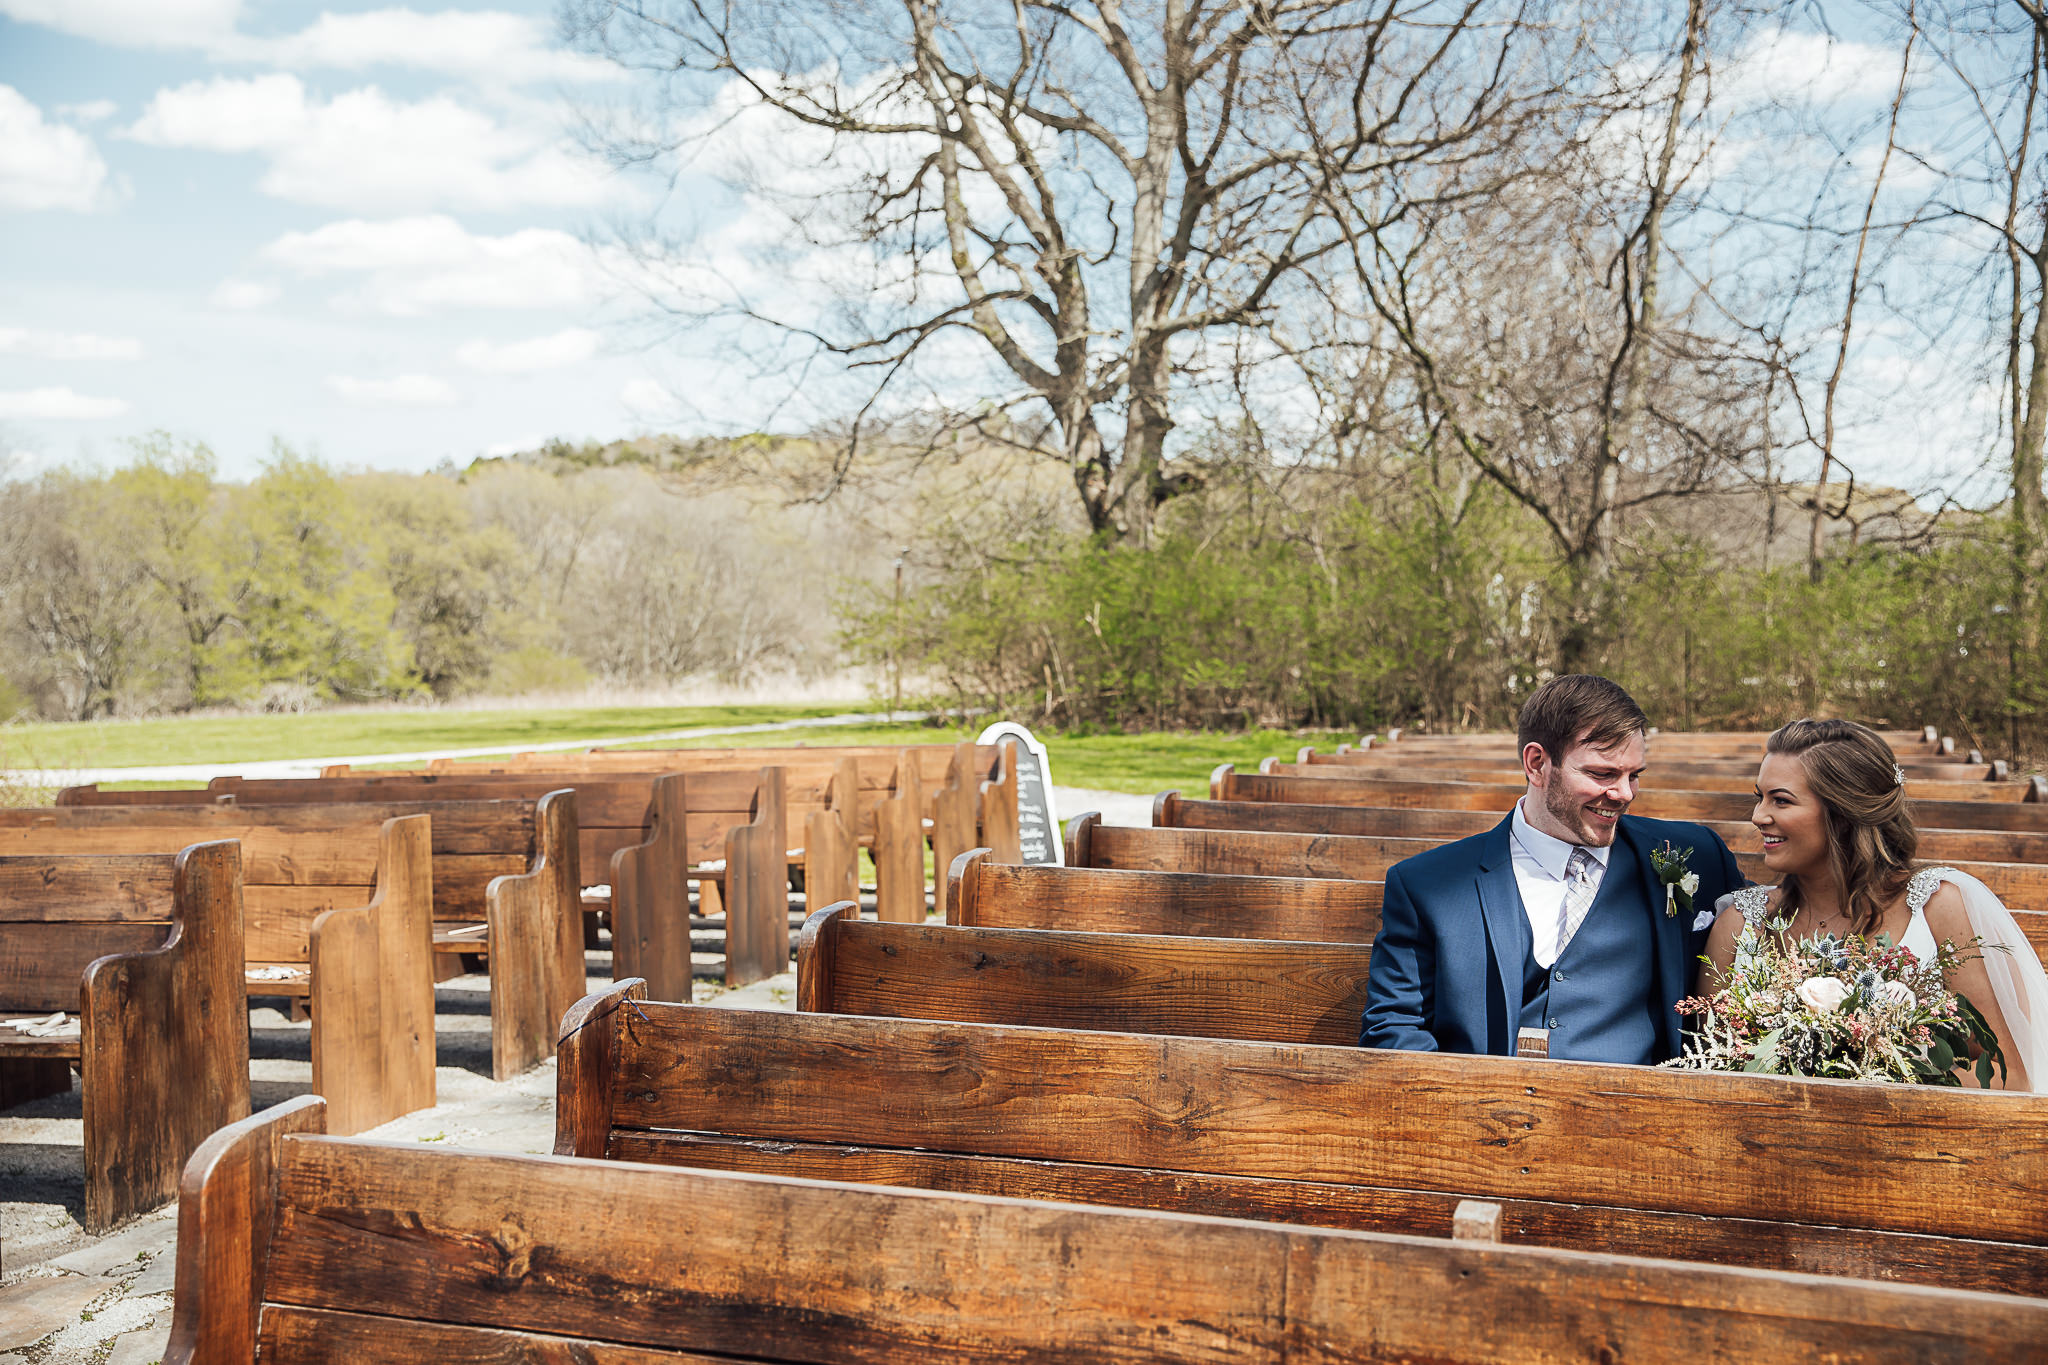 memphis-wedding-photographer-meadow-hill-farms-thewarmtharoundyou (13 of 93).jpg